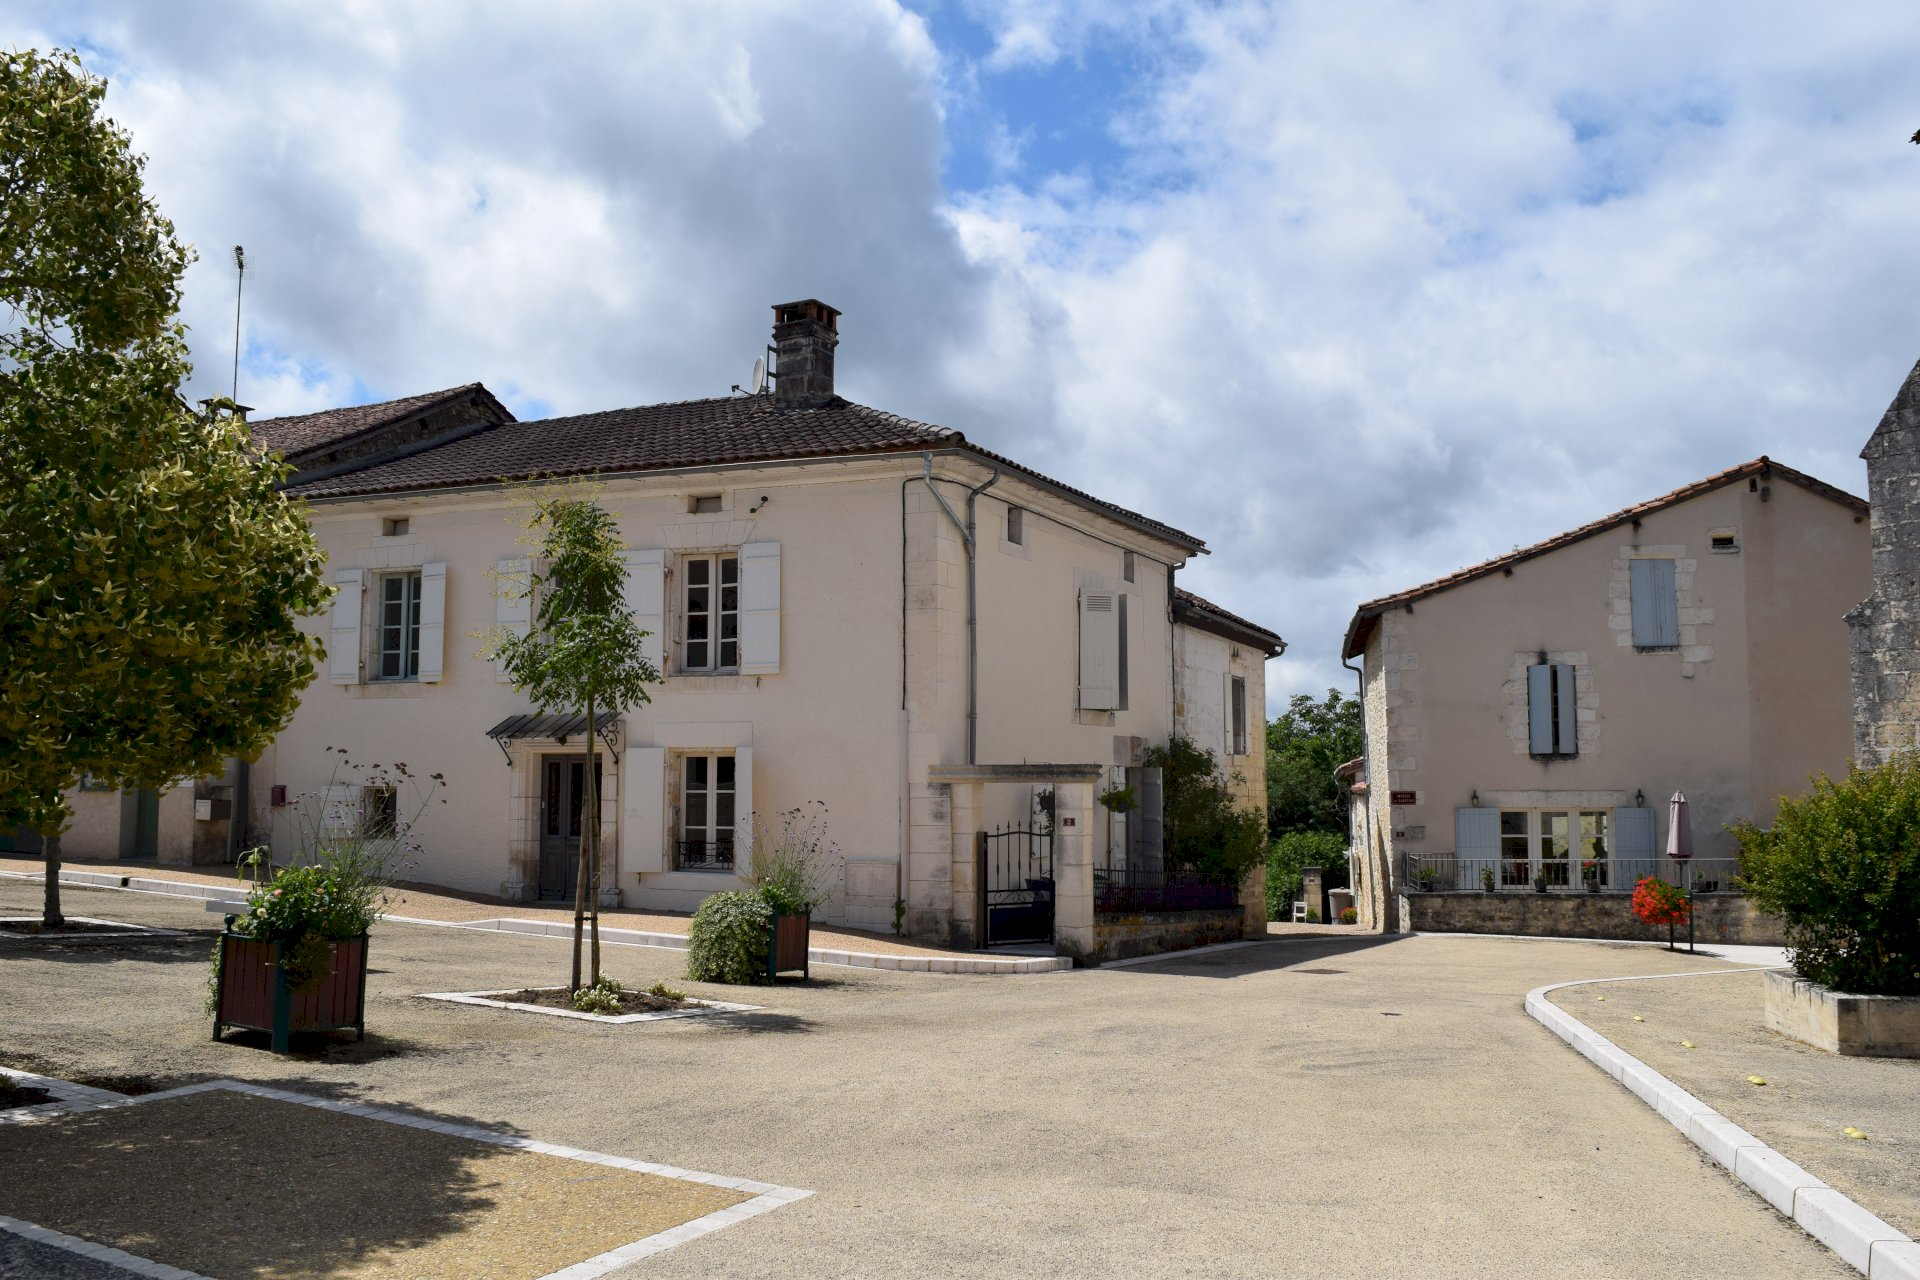 Village house with attached house, gite, barns, gardens and 2 pools